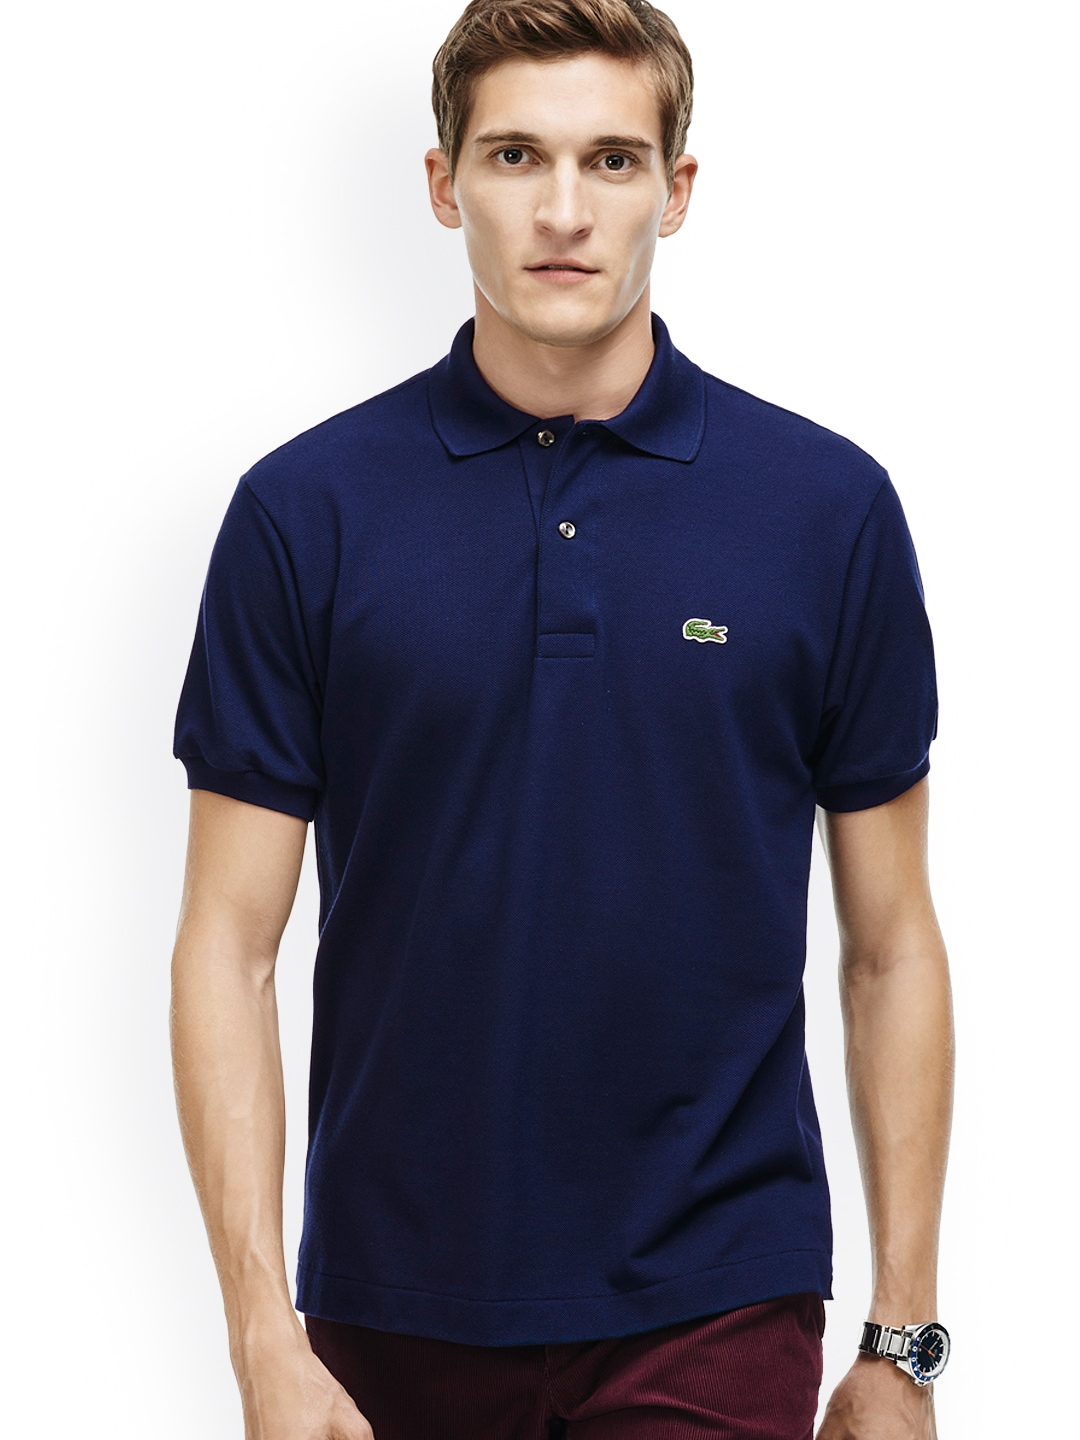 498be76631 Lacoste - Buy Genuine Lacoste Products Online In India | Myntra